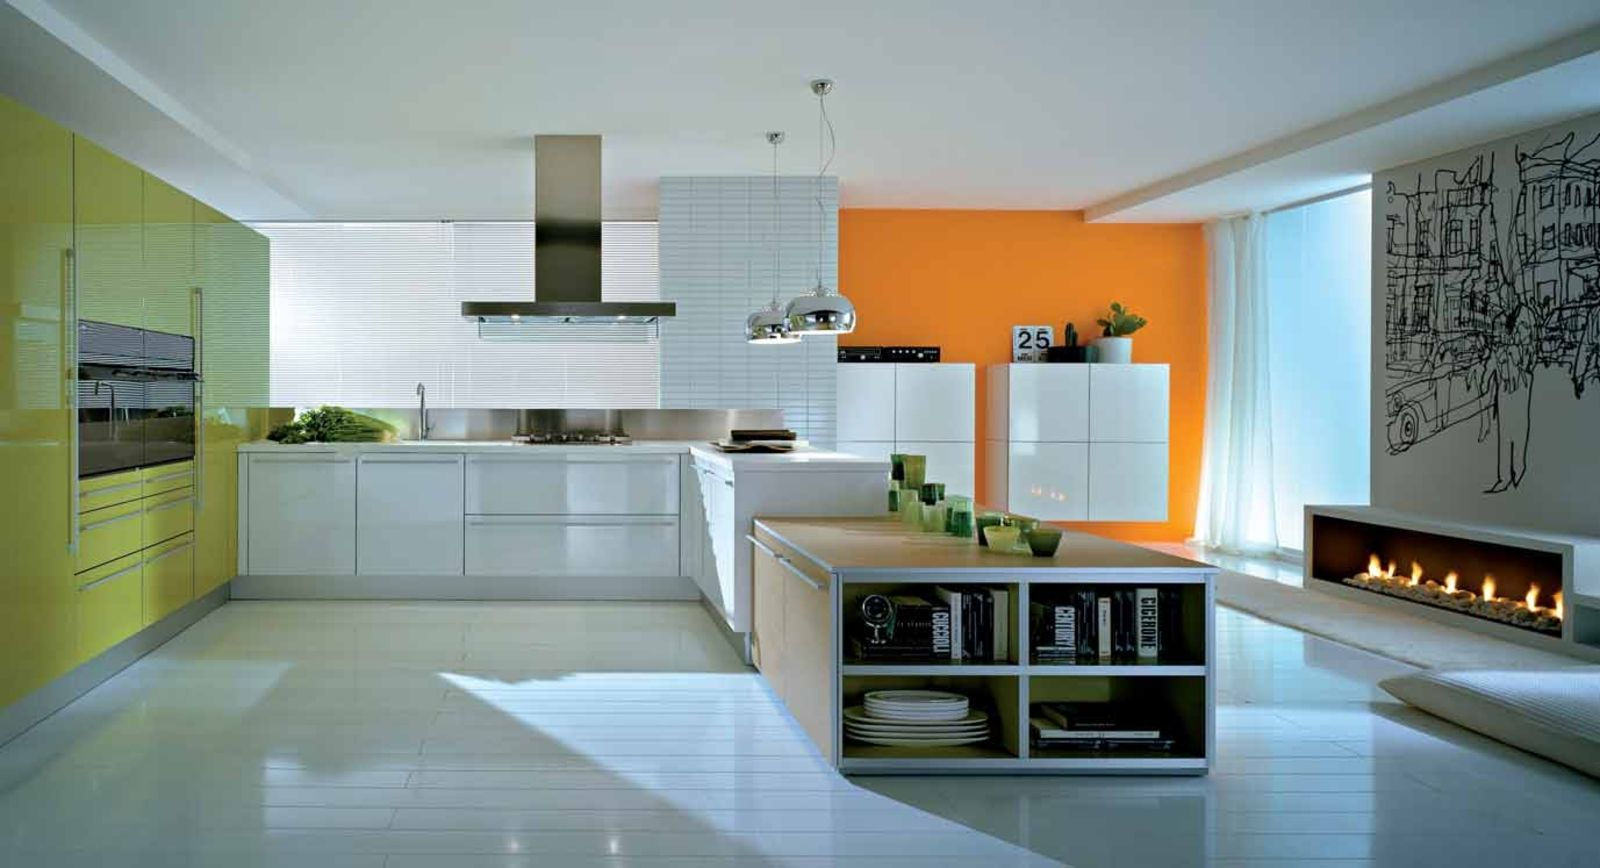 The kitchen is the heart of the home here is a colourful kitchen